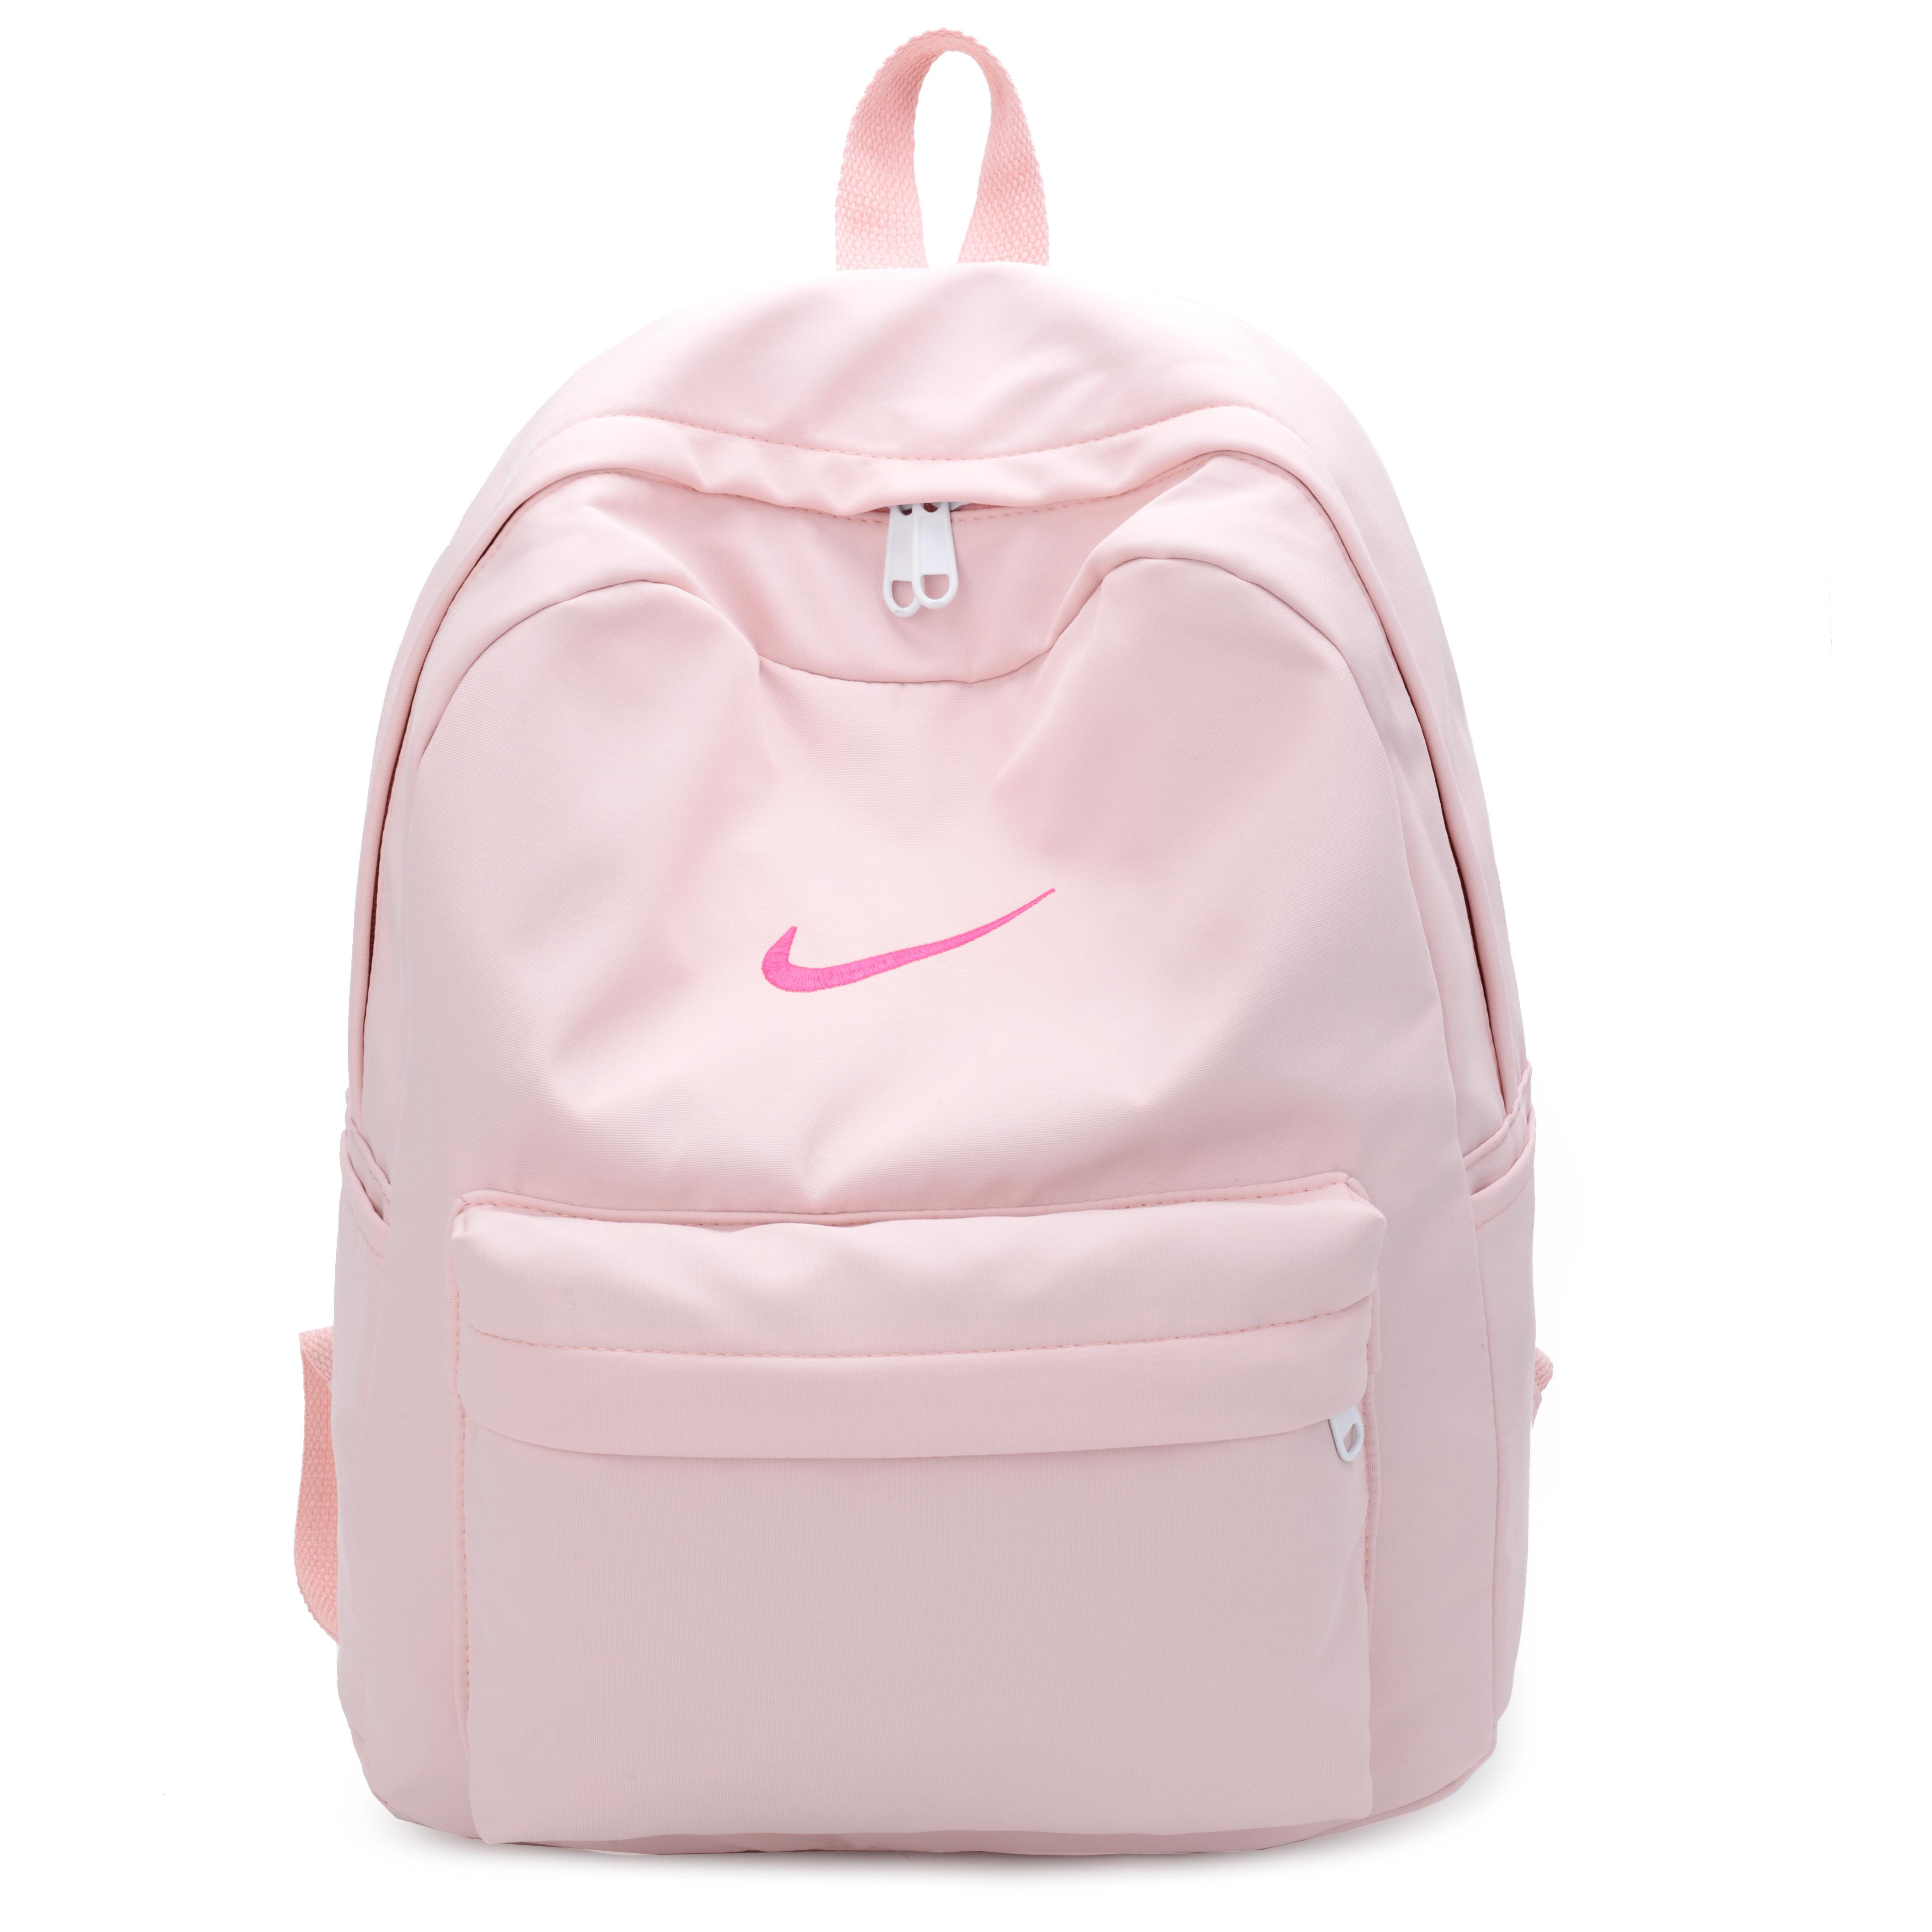 Nike_backpack Fashion Simple Shoulder Bag School Bag Computer Bag Girls Popular Bag Unisex Bag Travel Bag Sport Backpack By Hhjb Hbv.